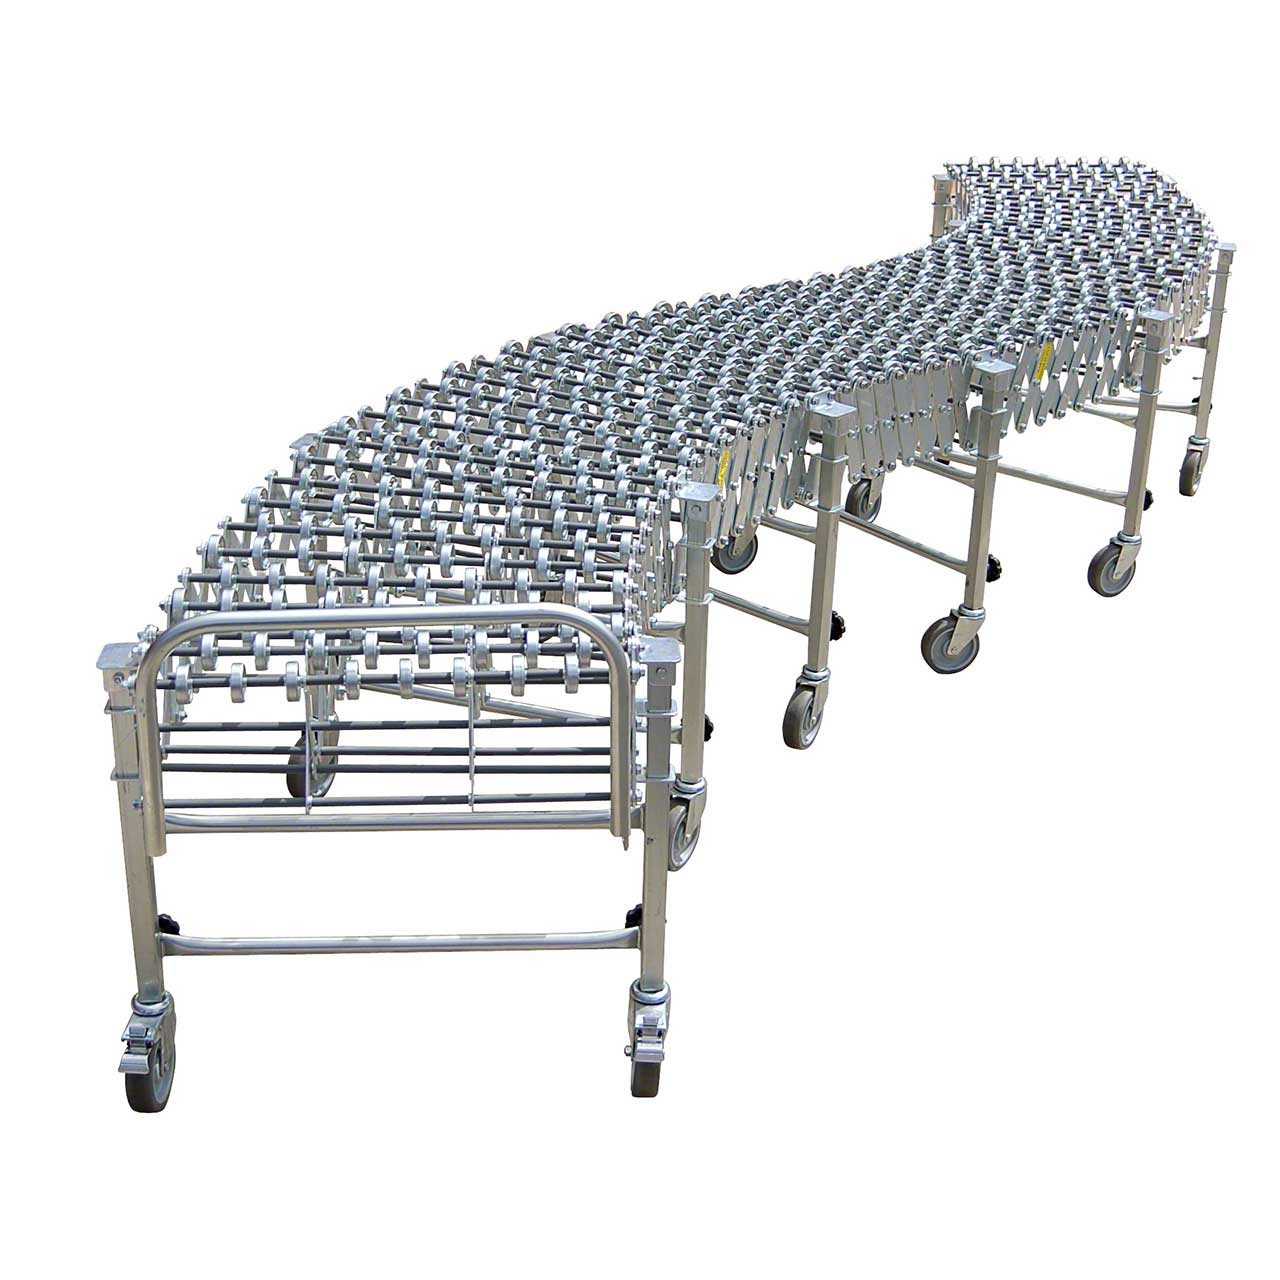 NestaFlex® 376 flexible skatewheel gravity conveyor